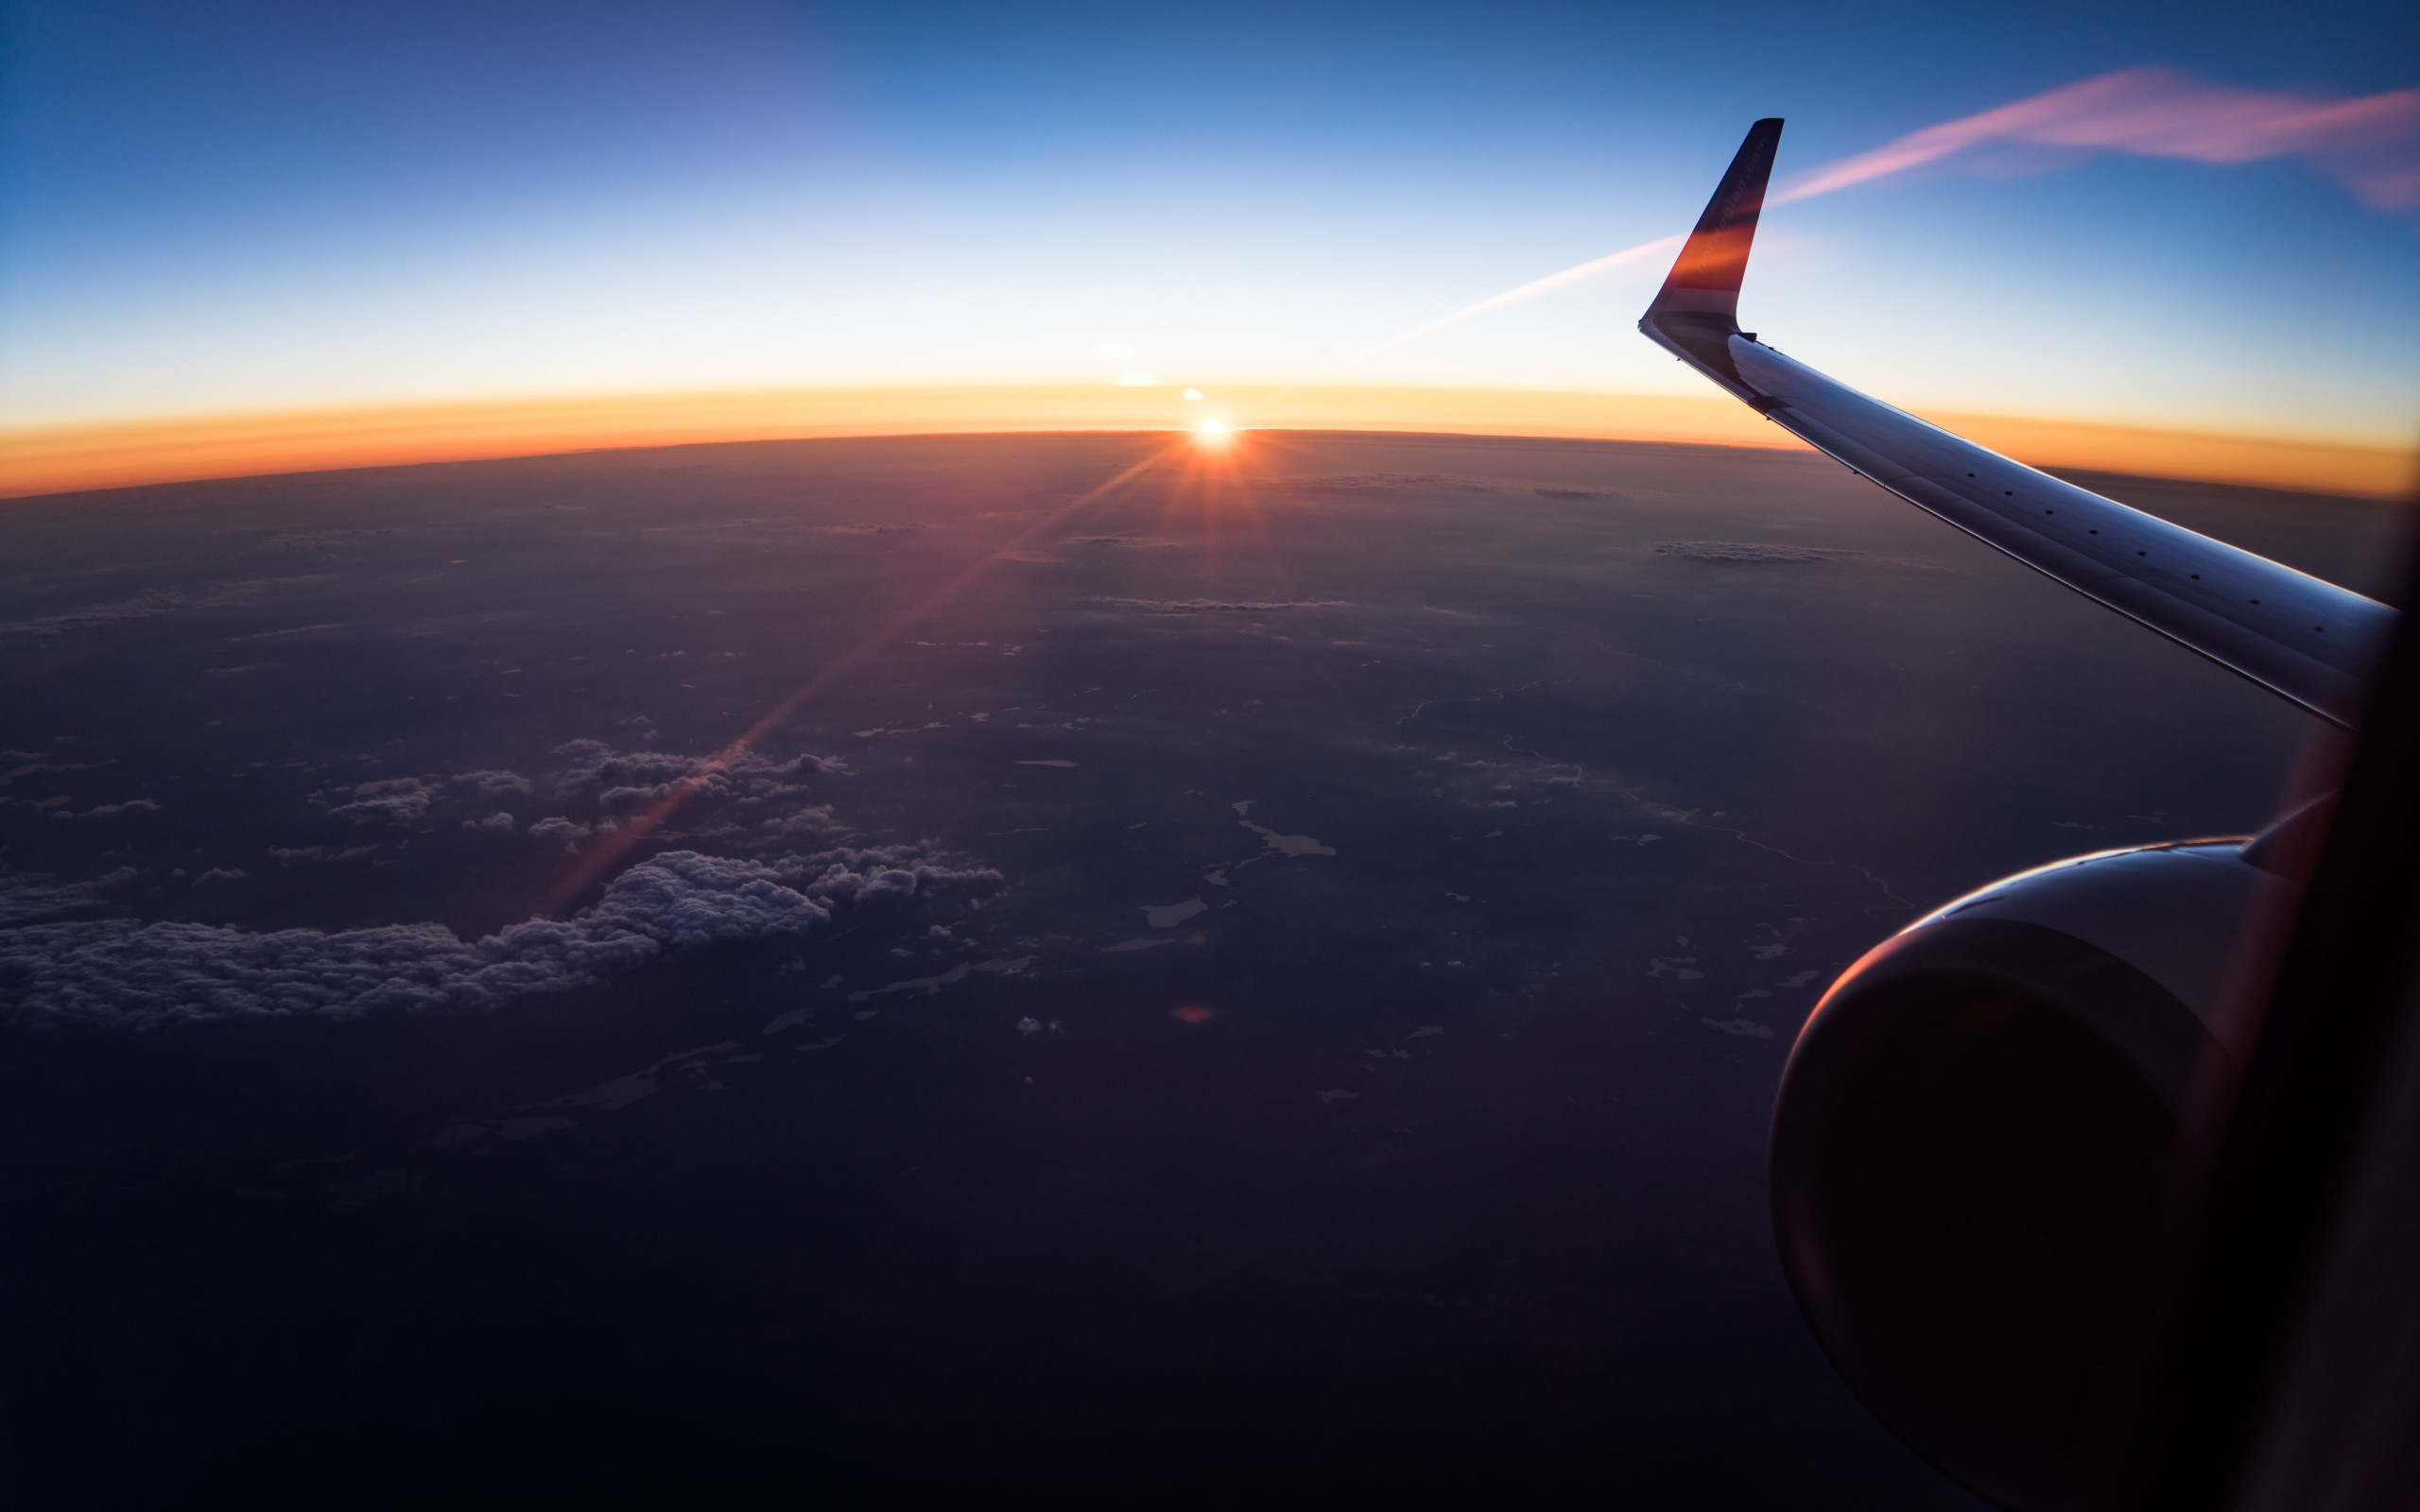 In the plane watching the sunset wallpaper 2560x1600